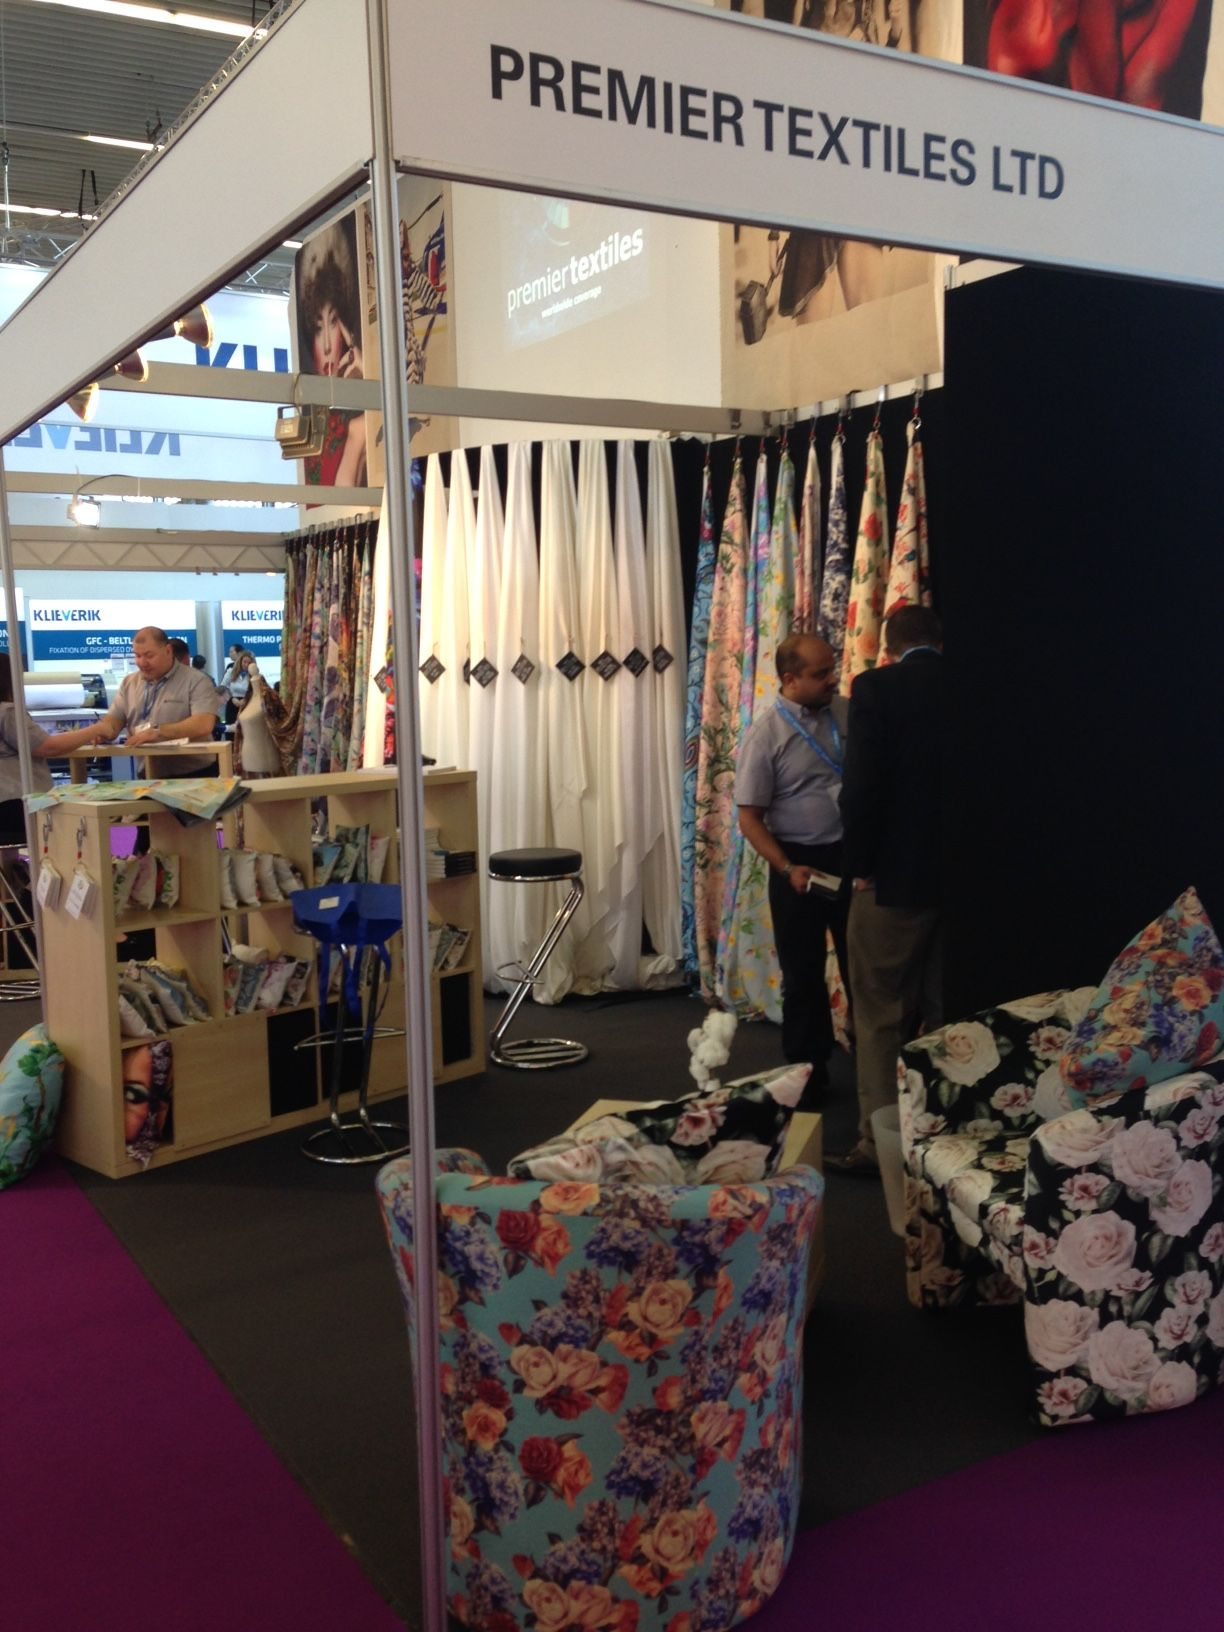 Some of the lovely textiles available at the Premier Textiles stand at FESPA Digital 2016. #fespadigital #fespa2016